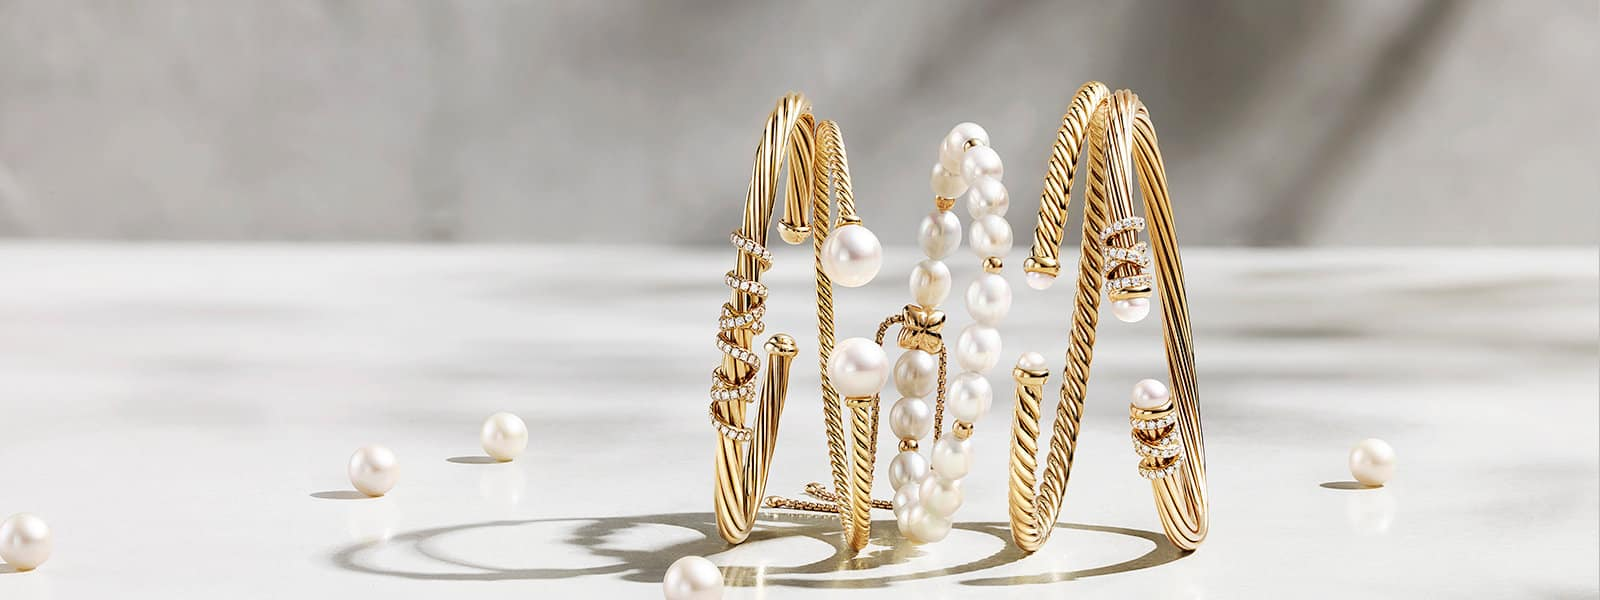 A horizontal stack of five David Yurman bracelets in 18K yellow gold with pavé diamonds and cultured pearls on a white-colored stone surface with loose pearls.